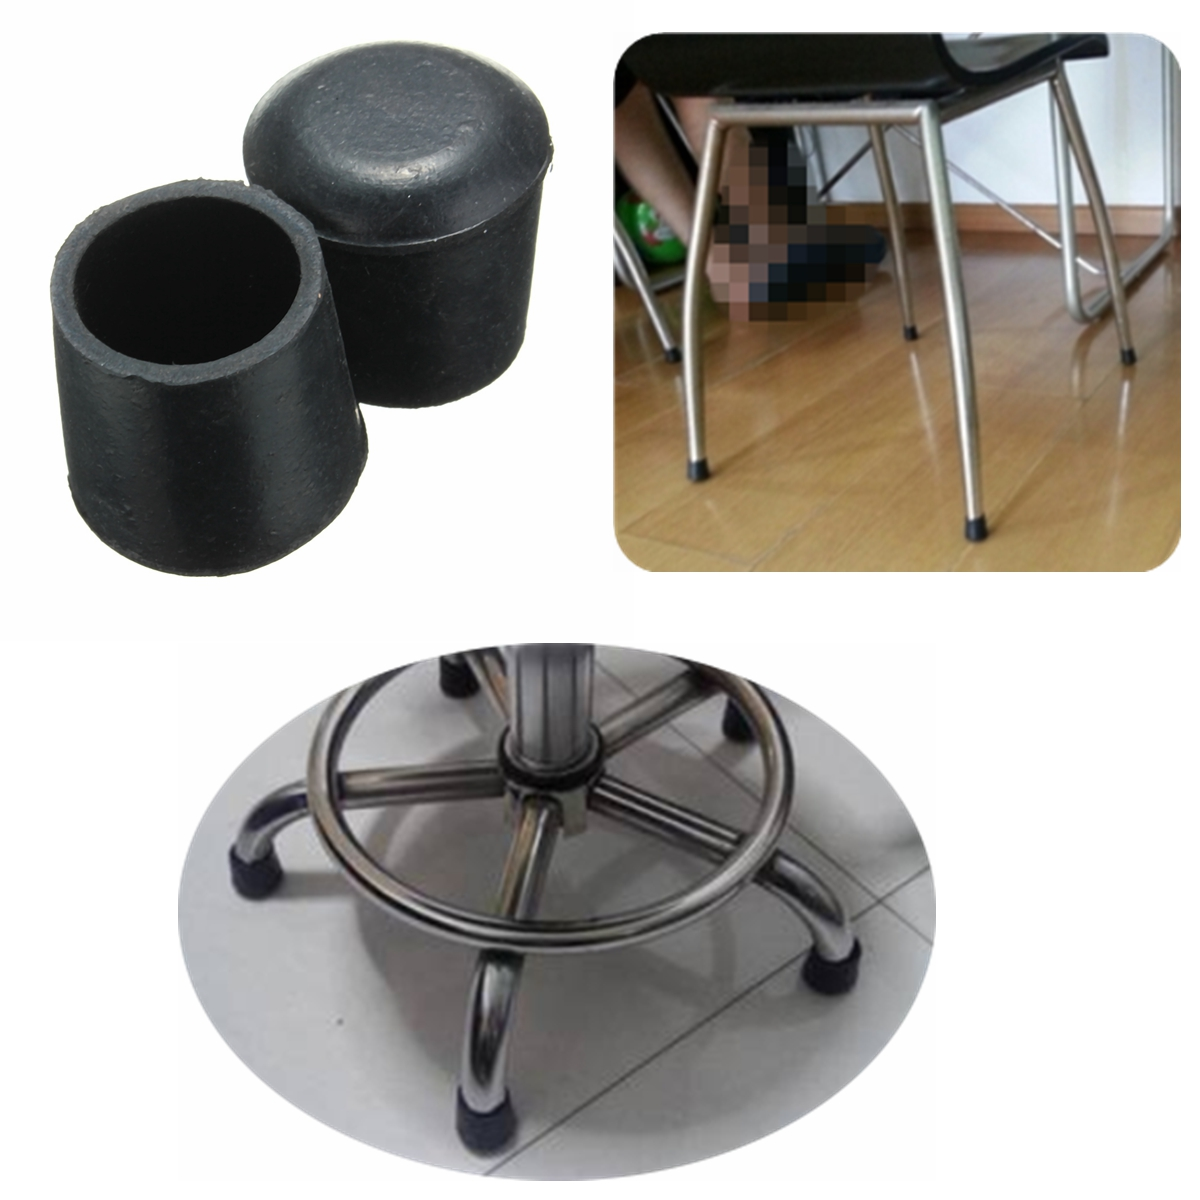 20pcs rubber table chair furniture feet leg tip pads floor Furniture wood floor protectors